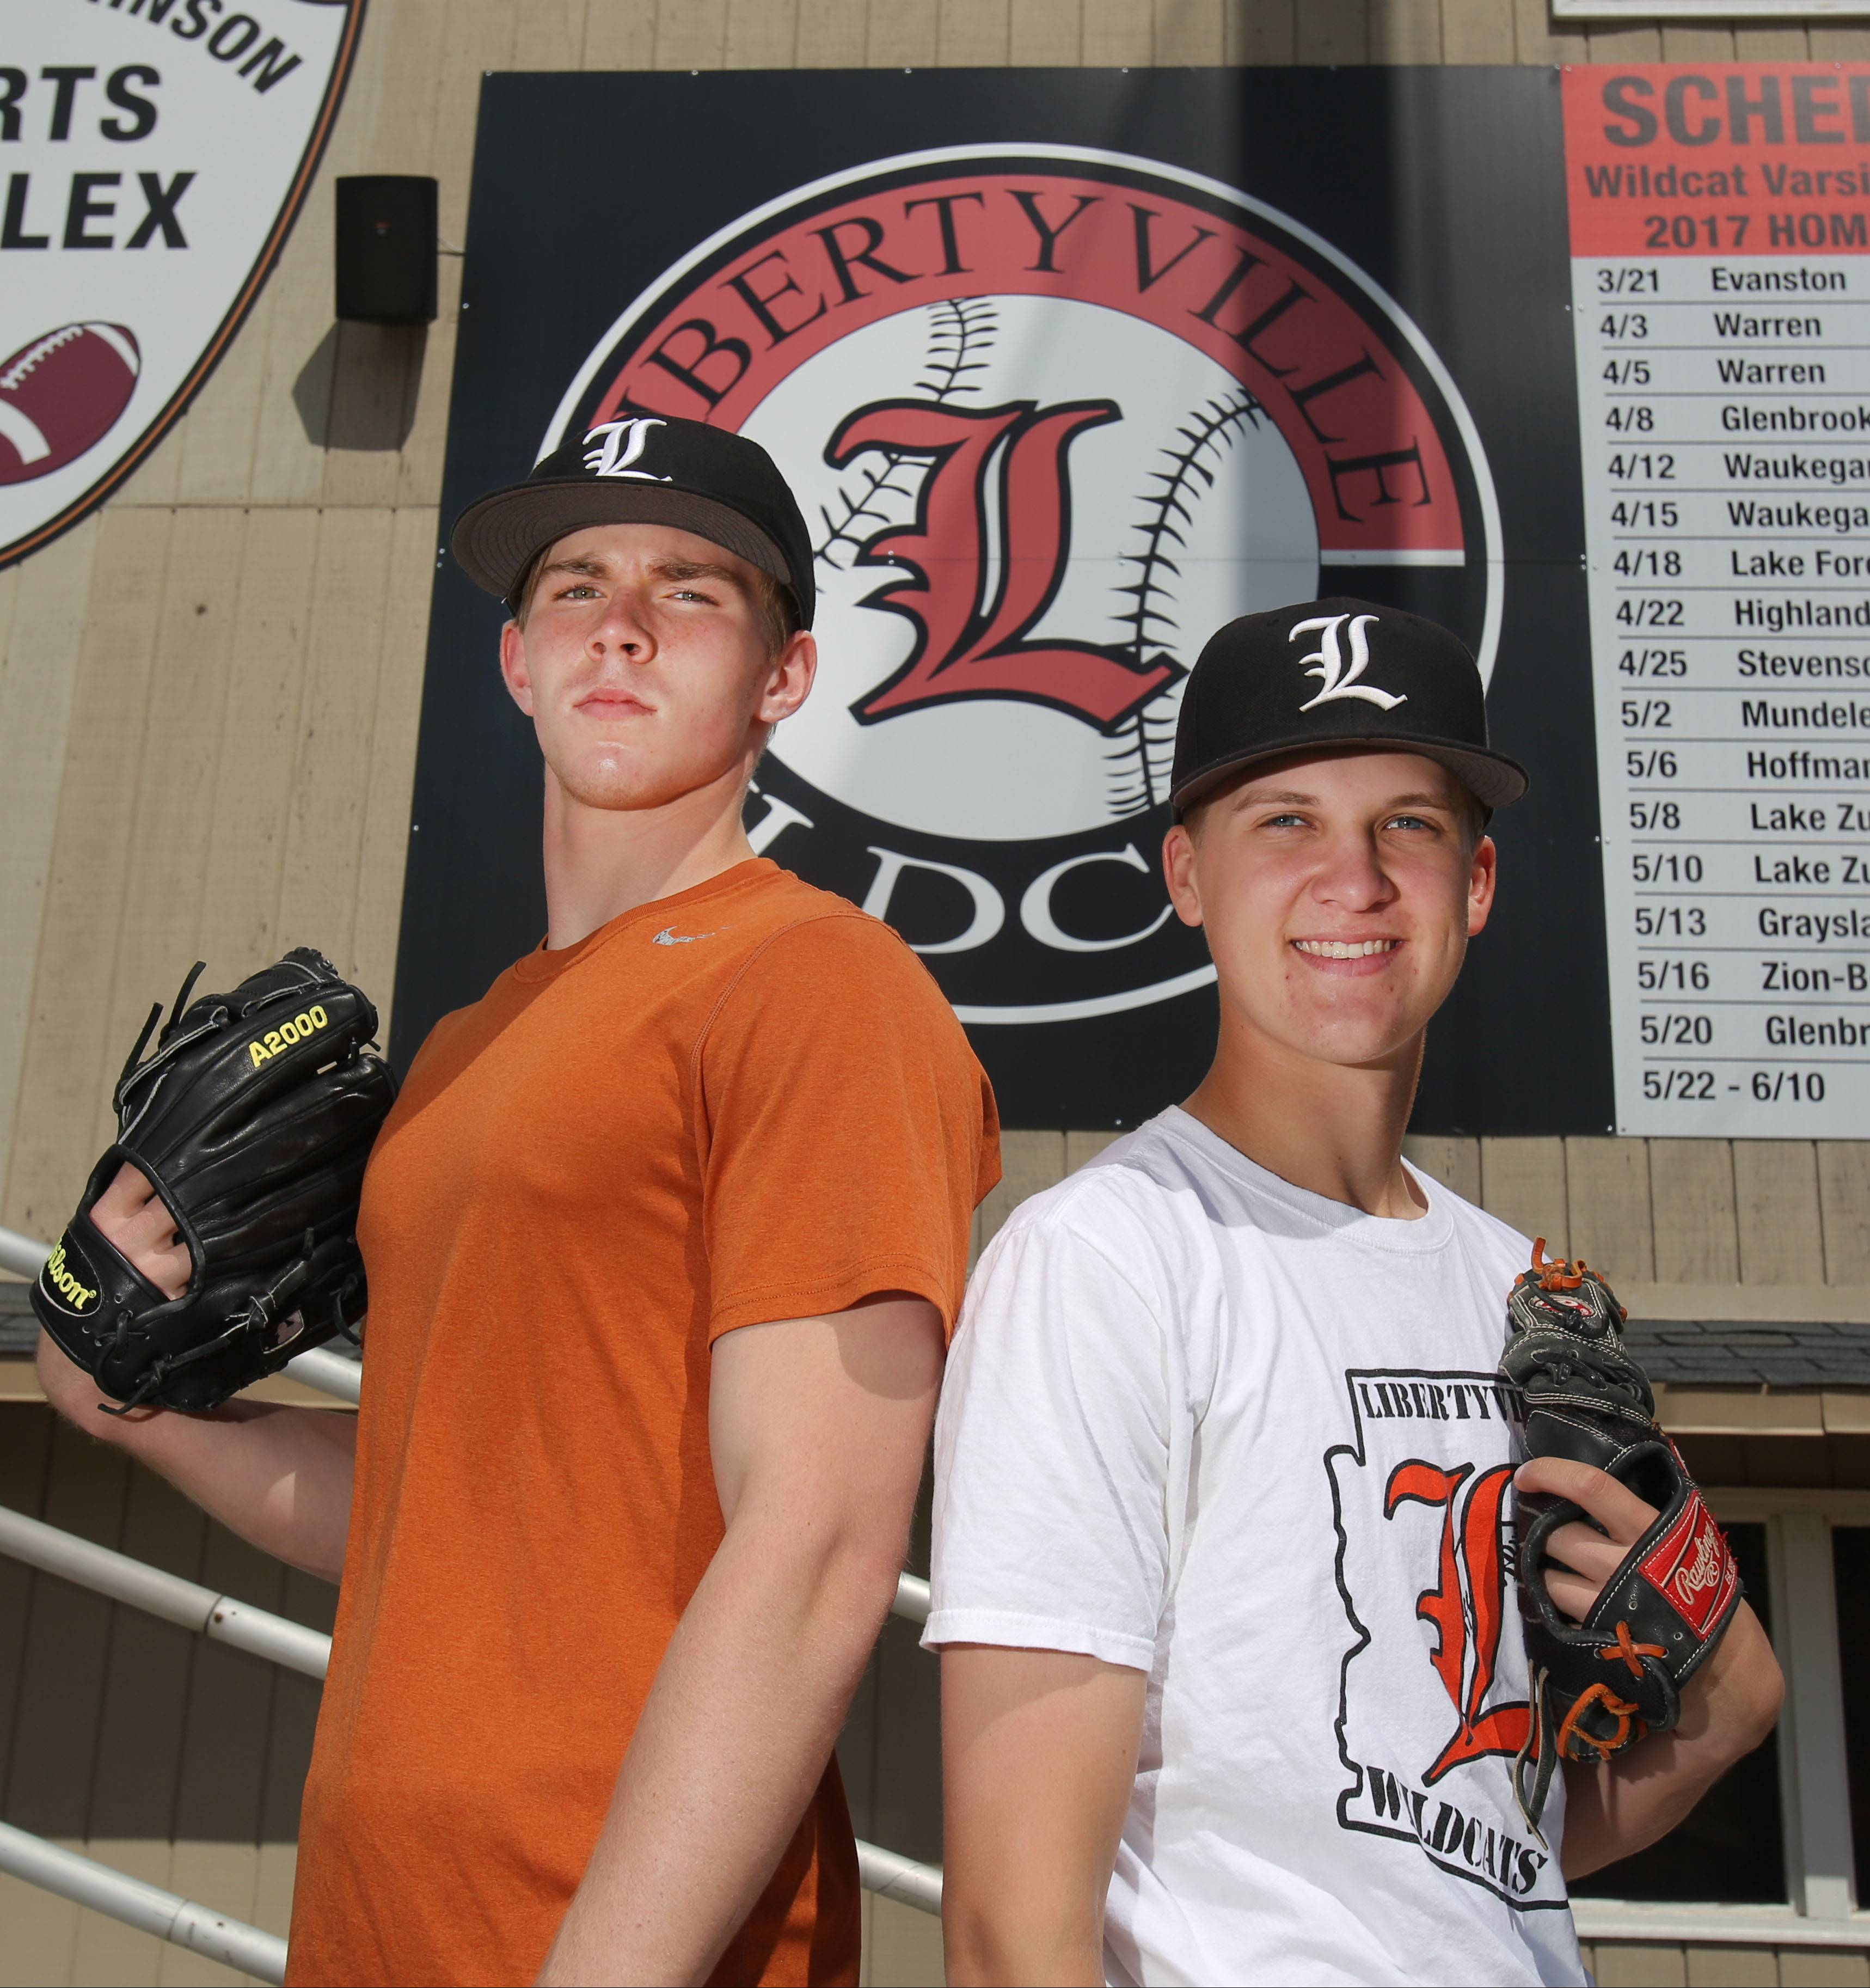 Libertyville senior pitchers Caleb Haddon, left, and Ben Land have helped Libertyville win the North Suburban Conference title and are going to pitch at the same college next year, DePauw University.